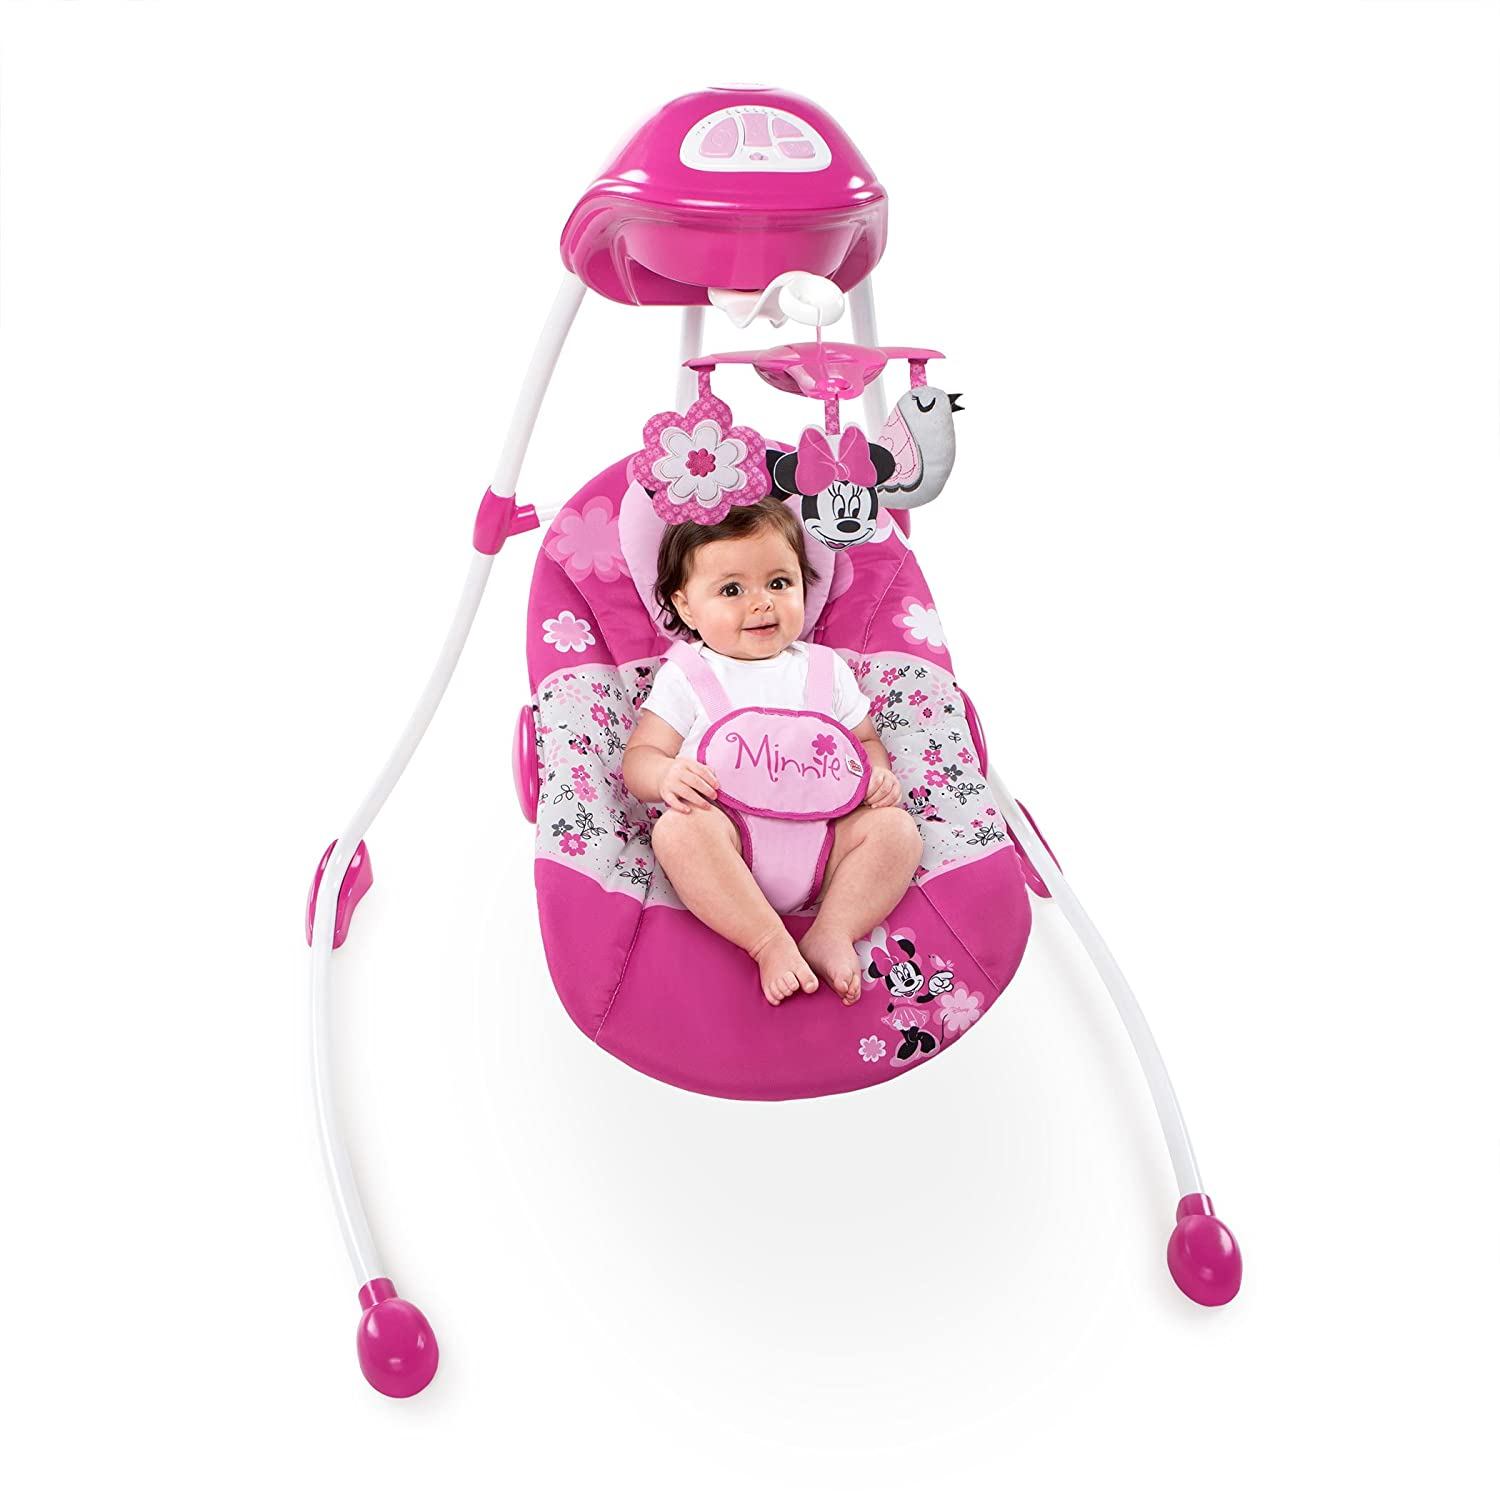 Disney Minnie Mouse Garden Delights Swing By Amazoncouk Baby